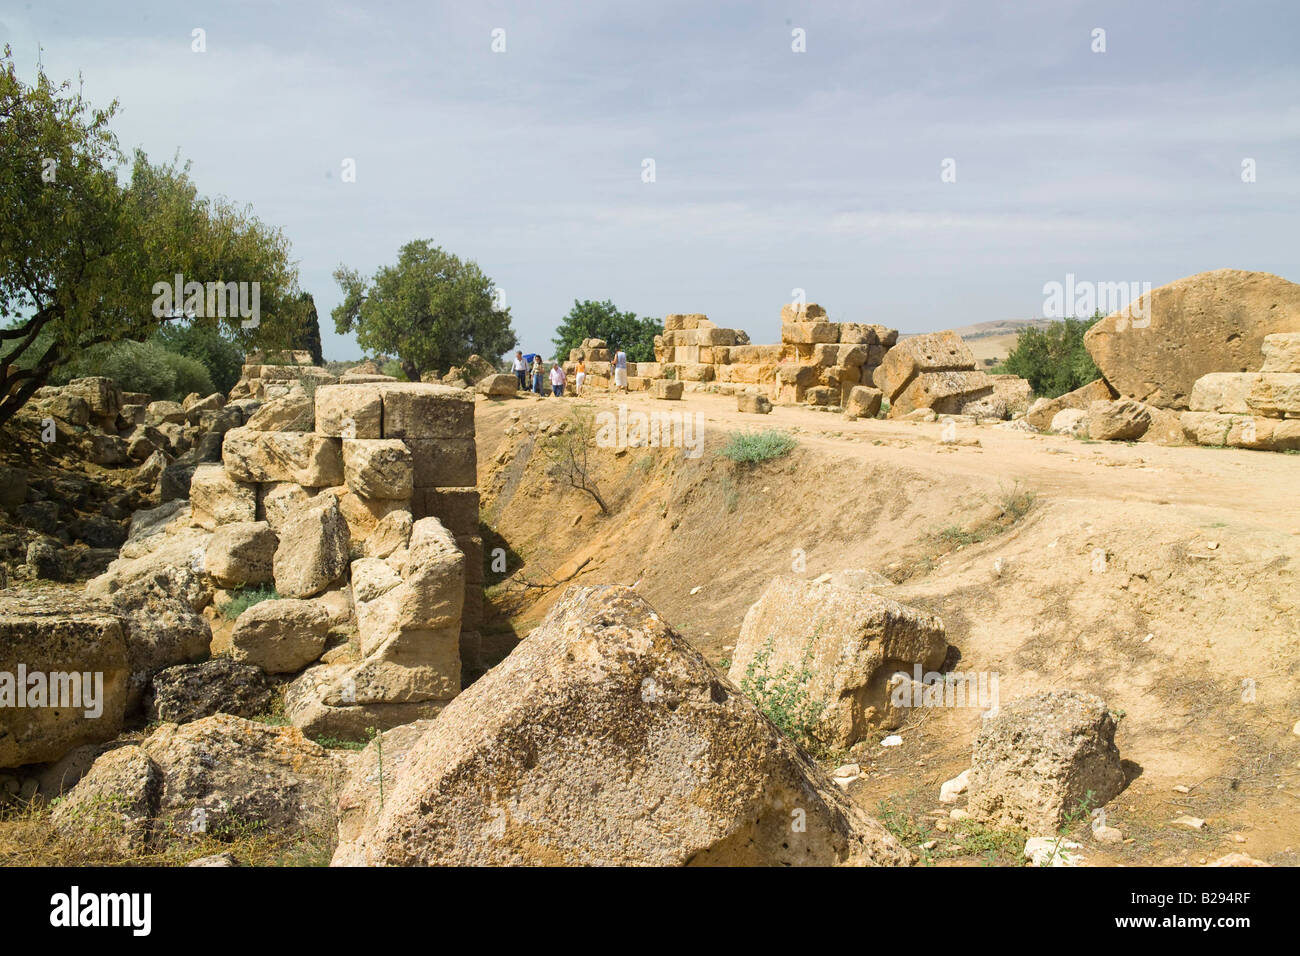 Valley of Temples Agrigento Sicily Date 28 05 2008 Ref ZB693 114318 0124 COMPULSORY CREDIT World Pictures Photoshot - Stock Image